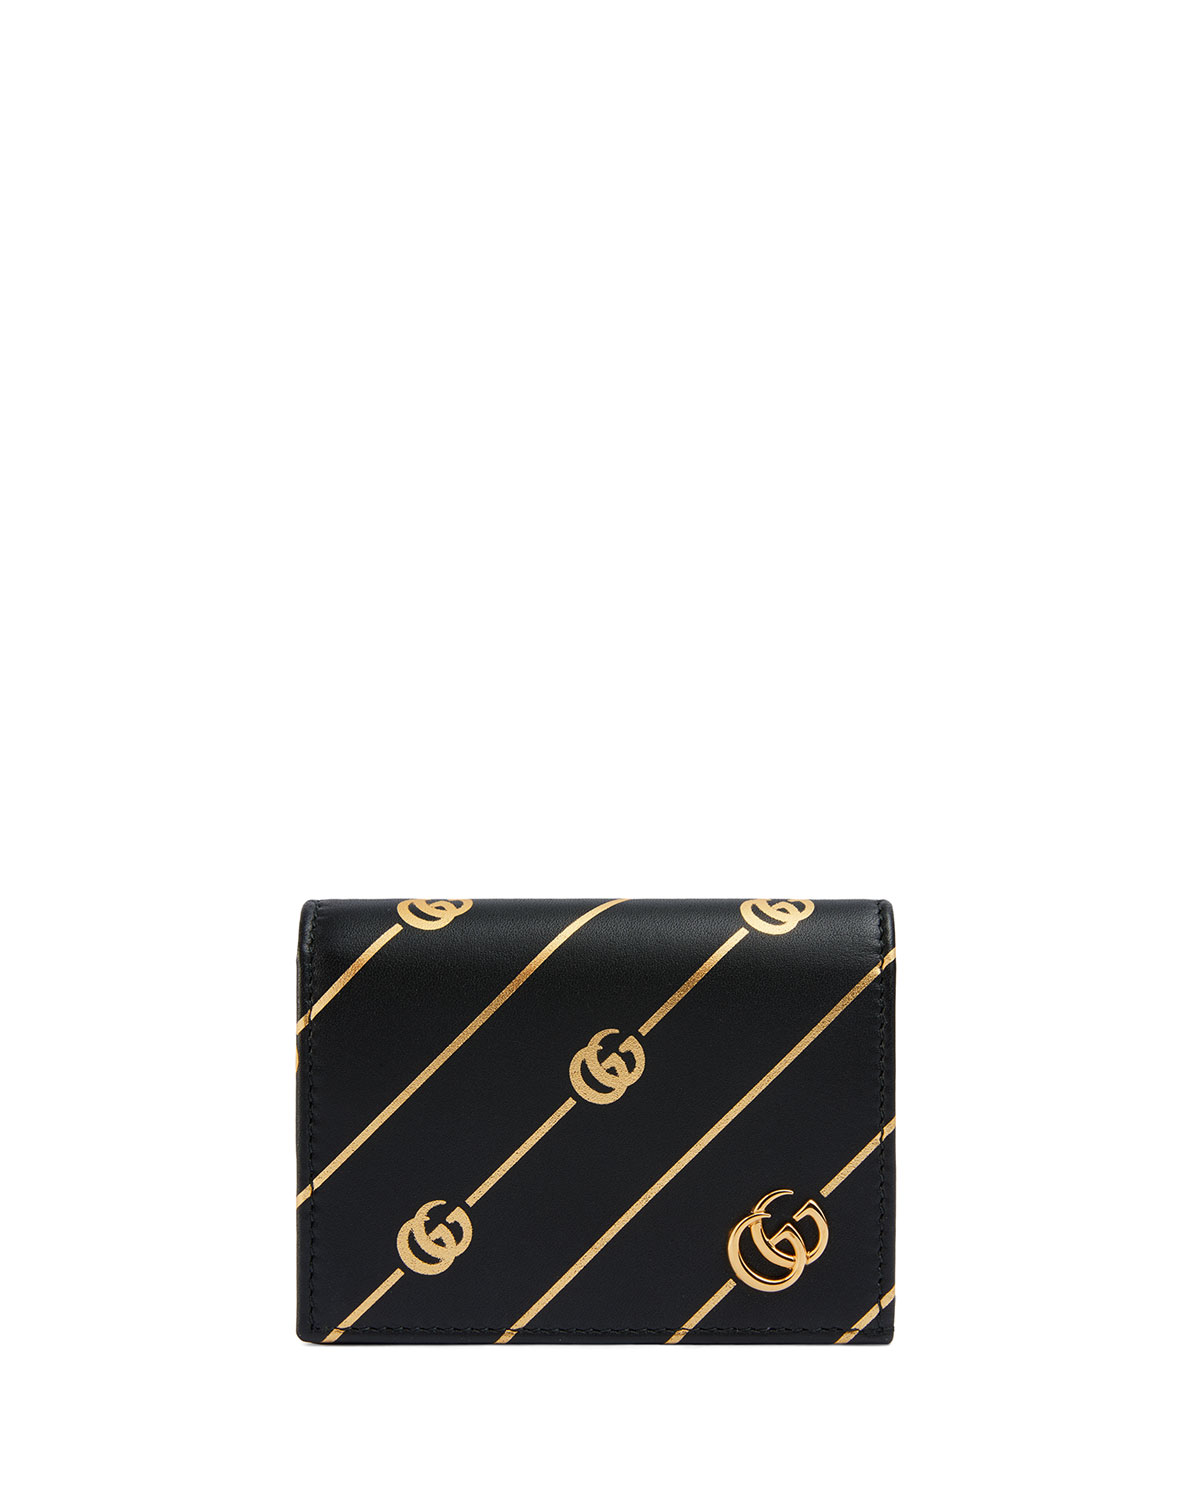 Gucci Leathers GG DIAGONAL FLAP CARD CASE